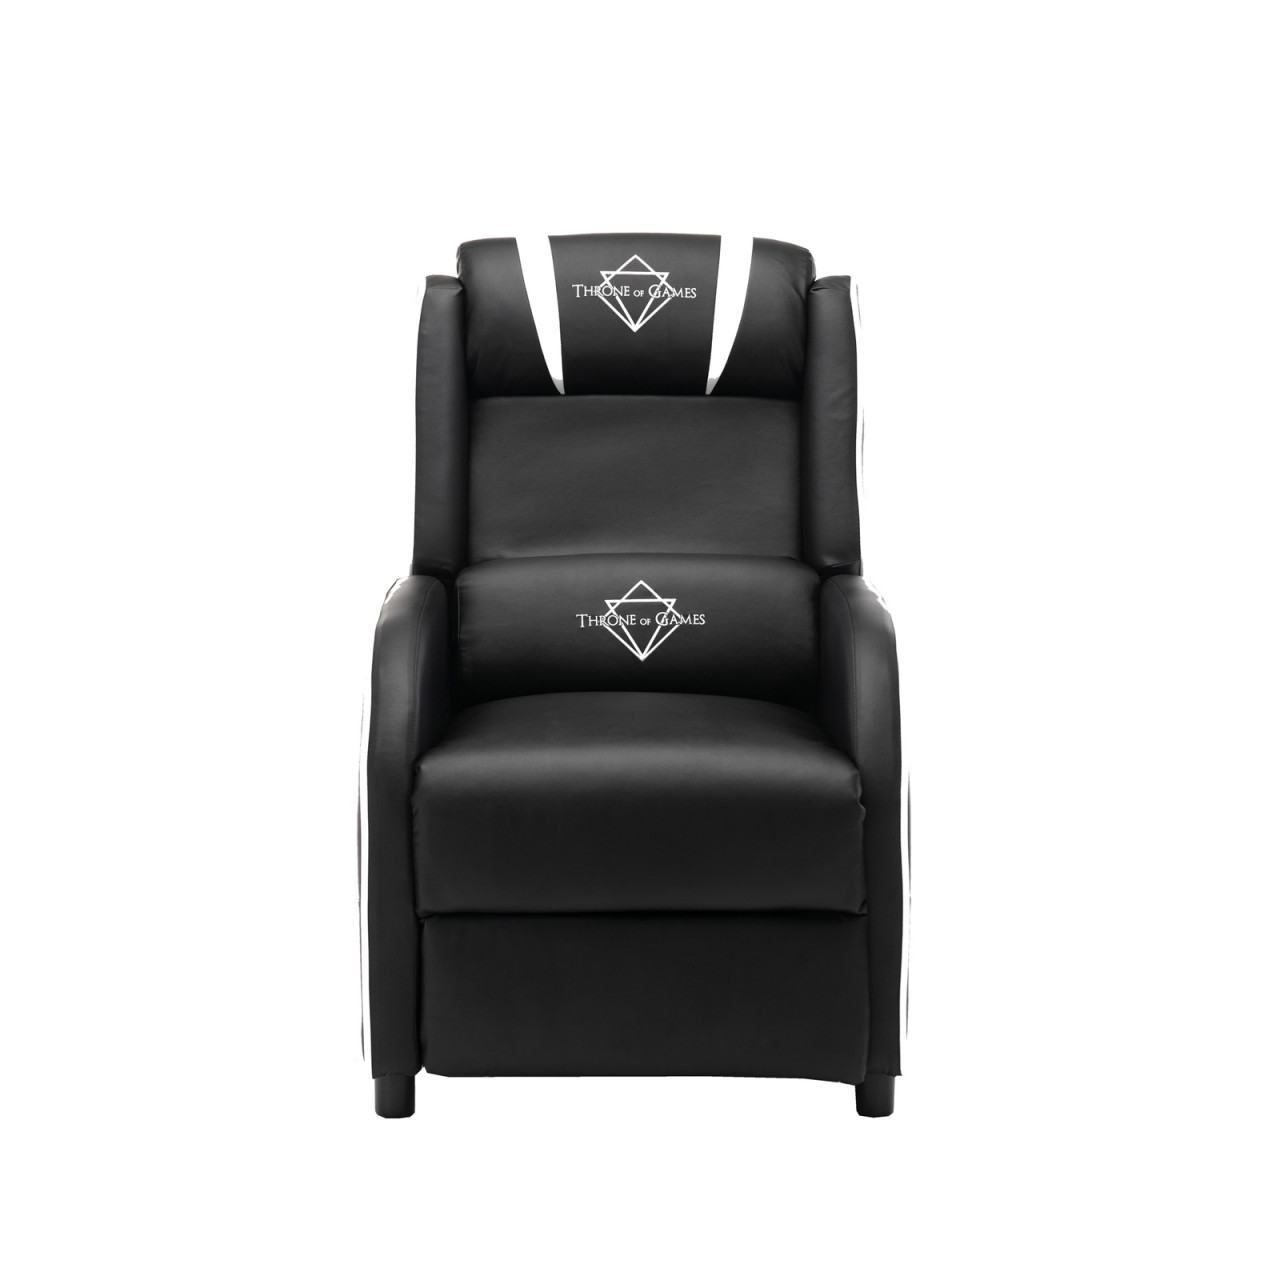 HTI-Line Relaxsessel Gaming Throne